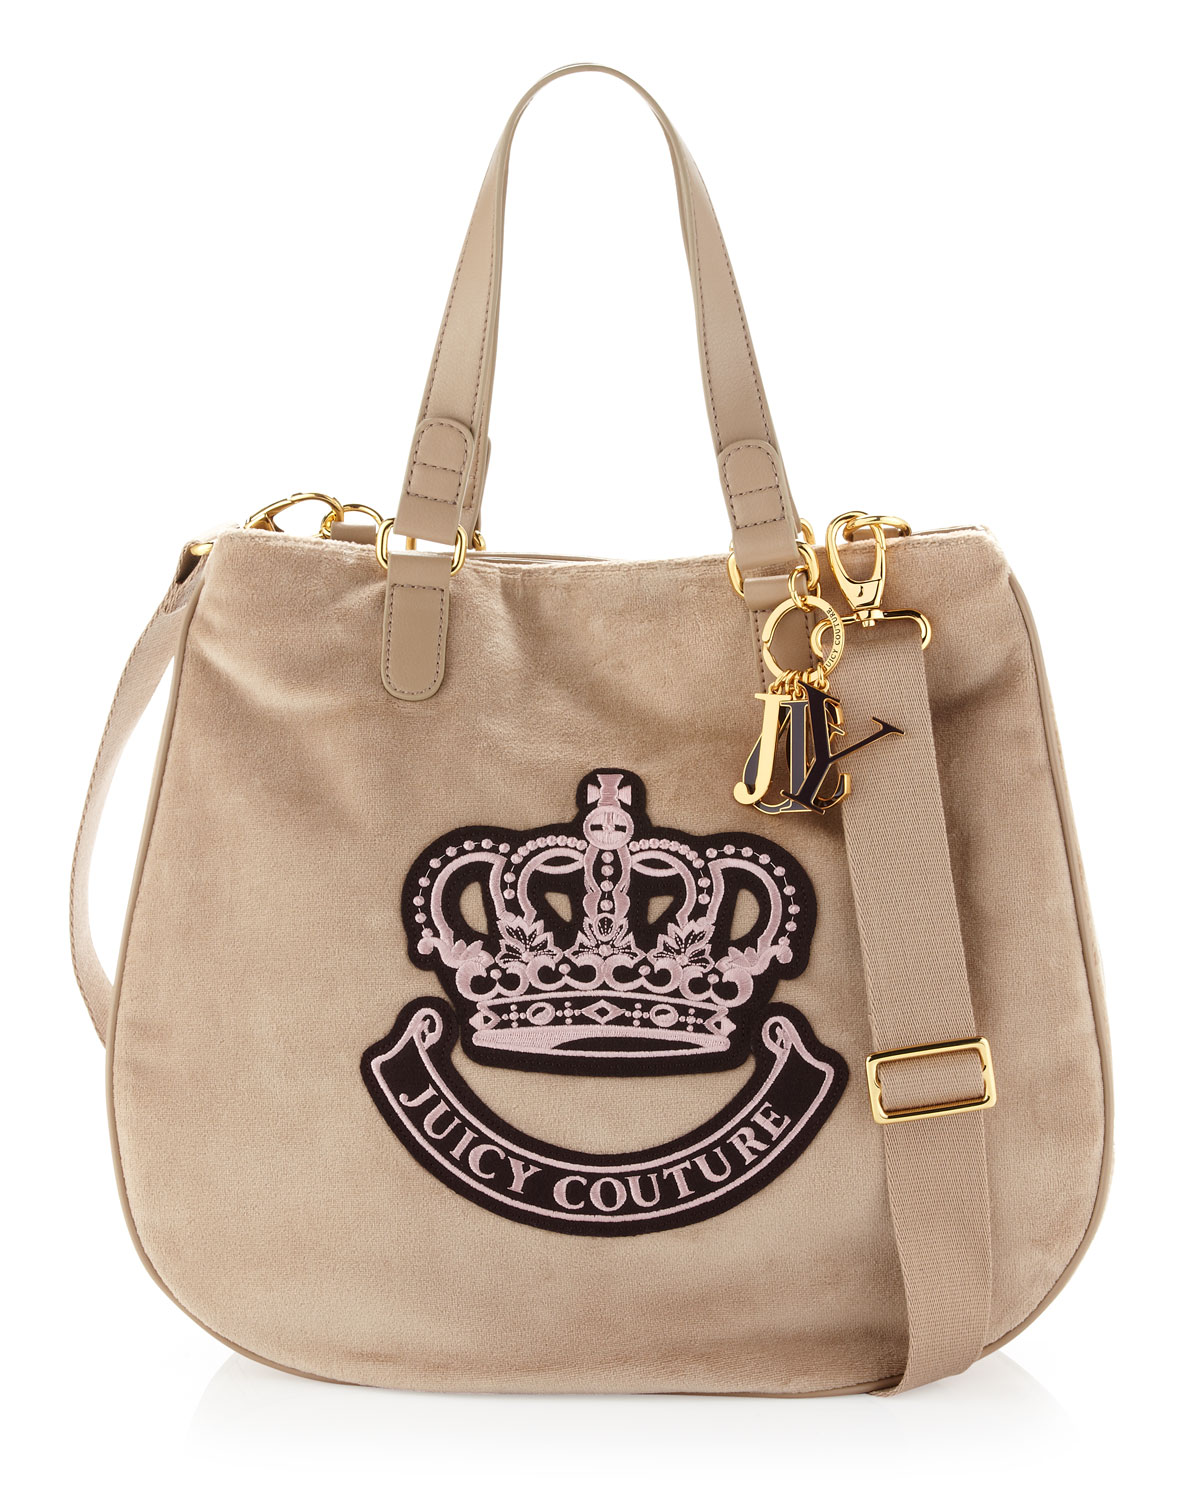 juicy couture victoria velour tote bag ancient in beige ancient lyst. Black Bedroom Furniture Sets. Home Design Ideas